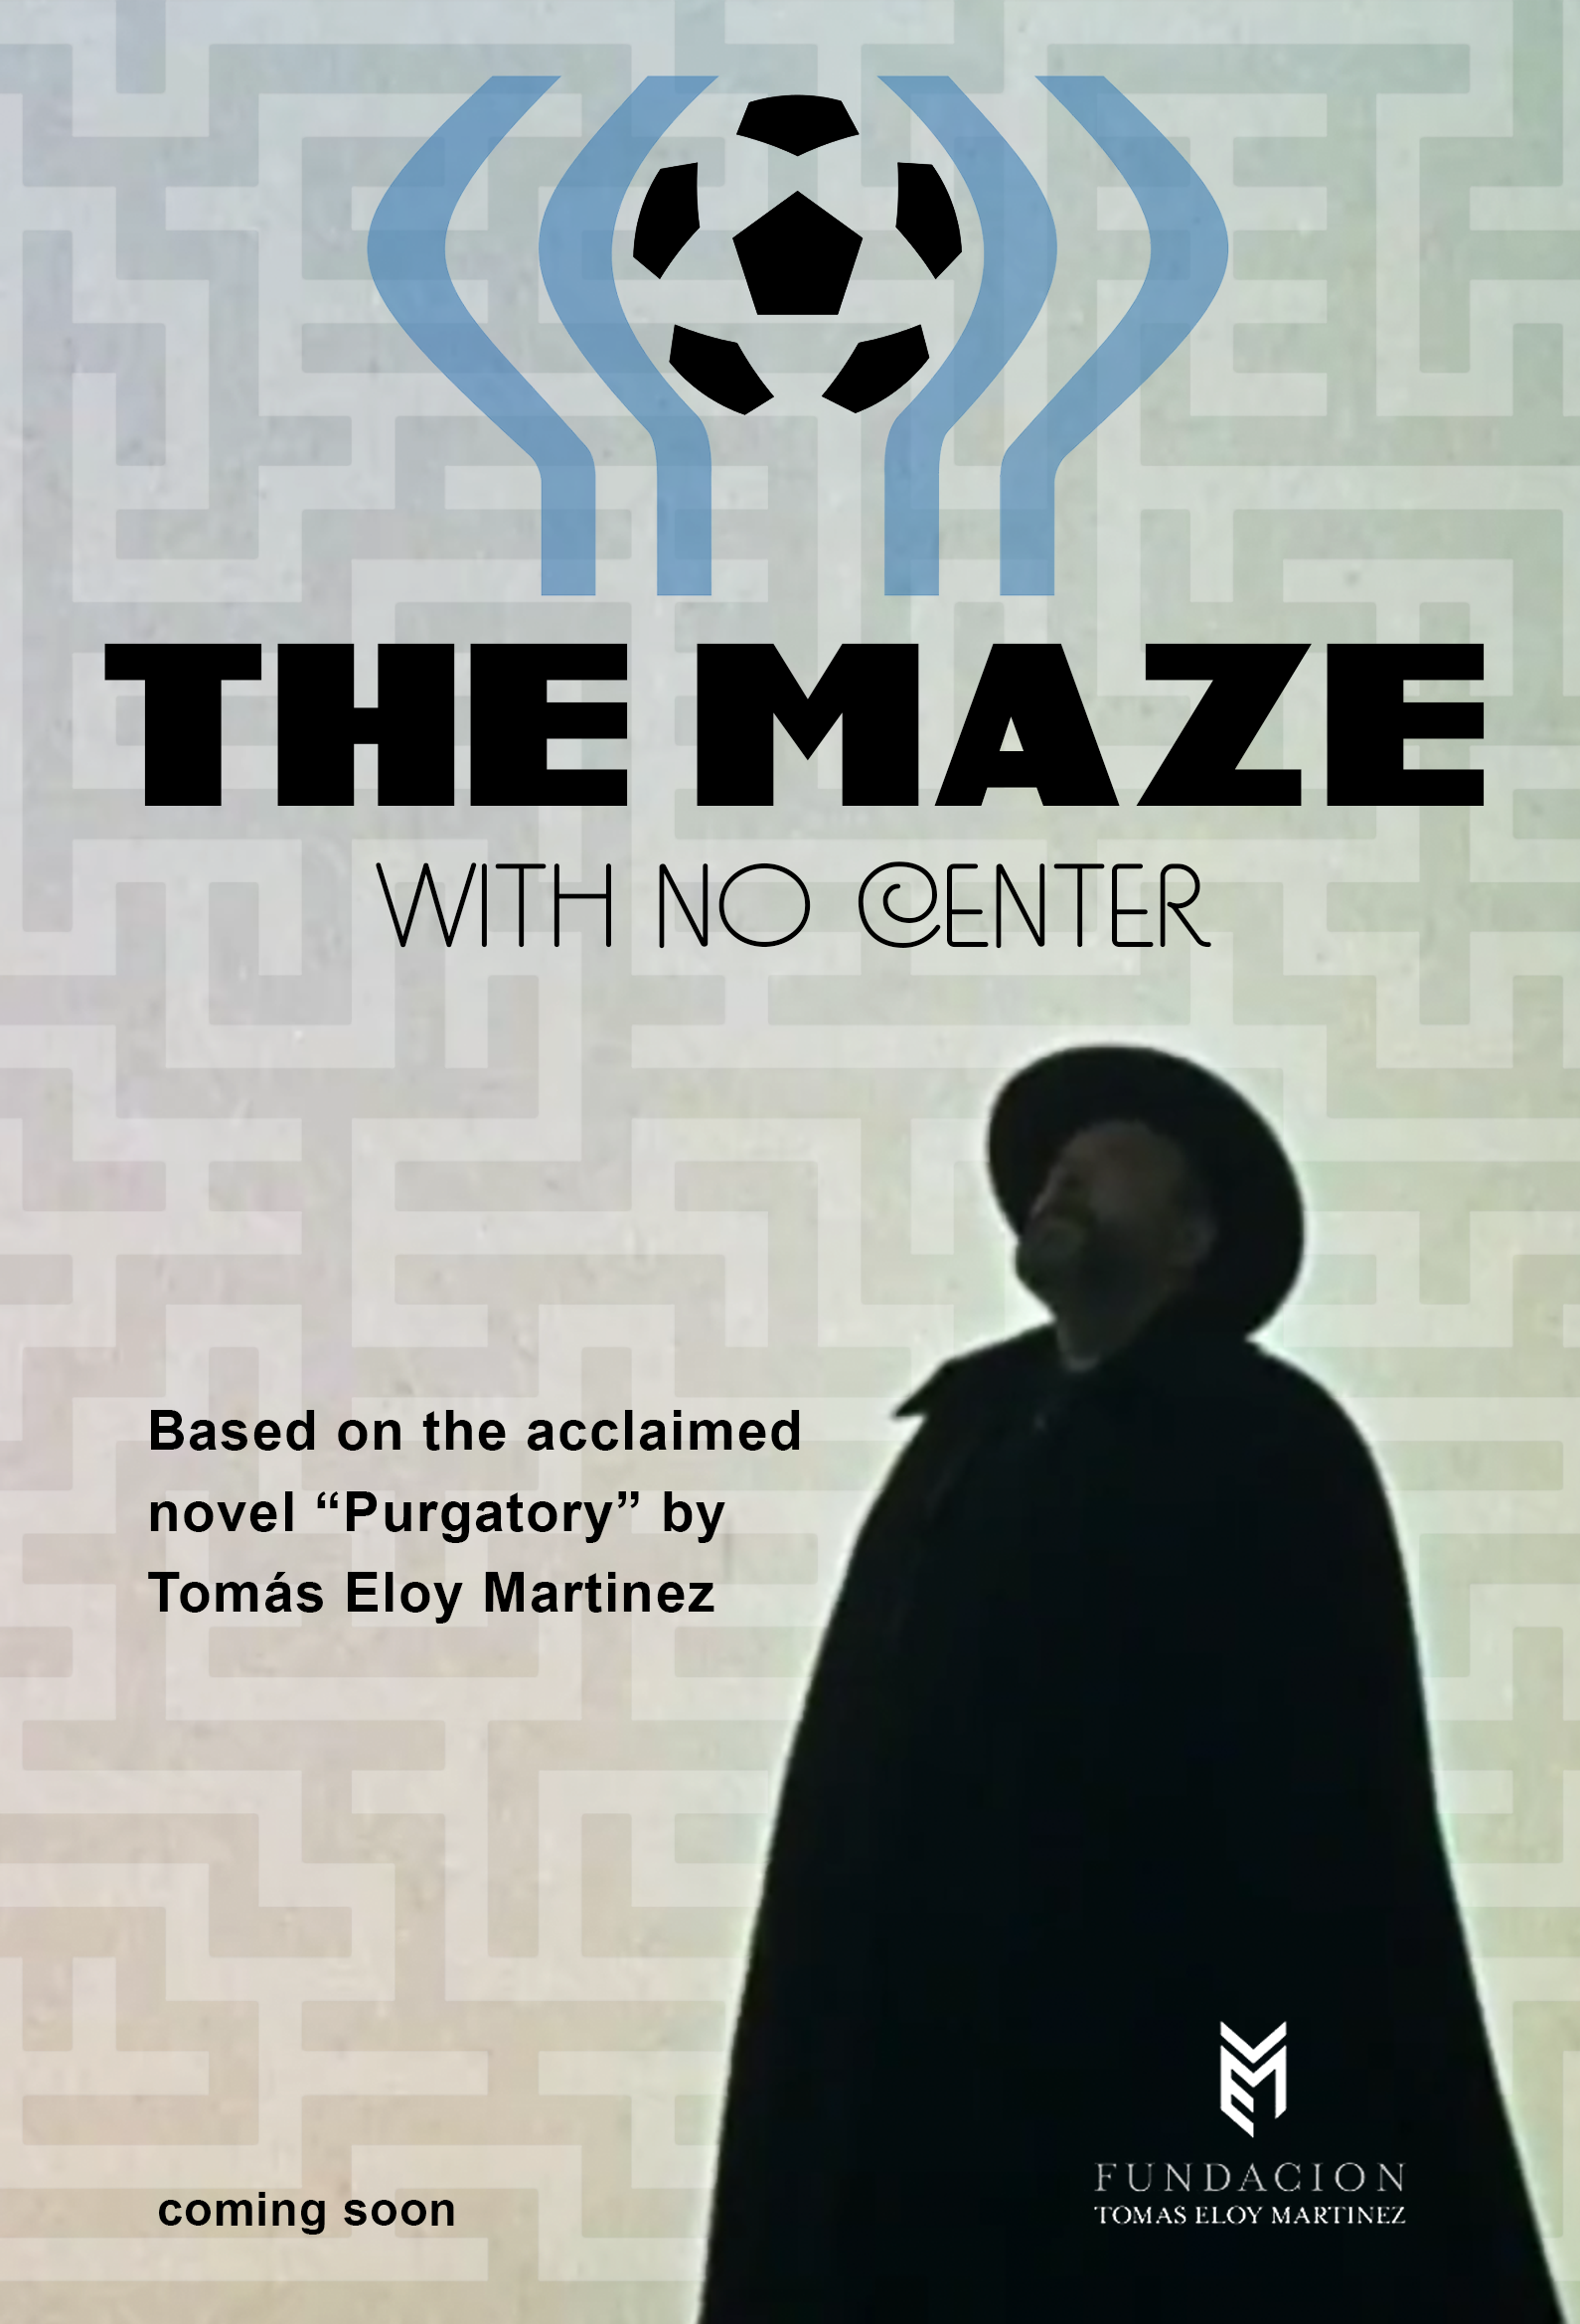 the maze with no center (in-progress)